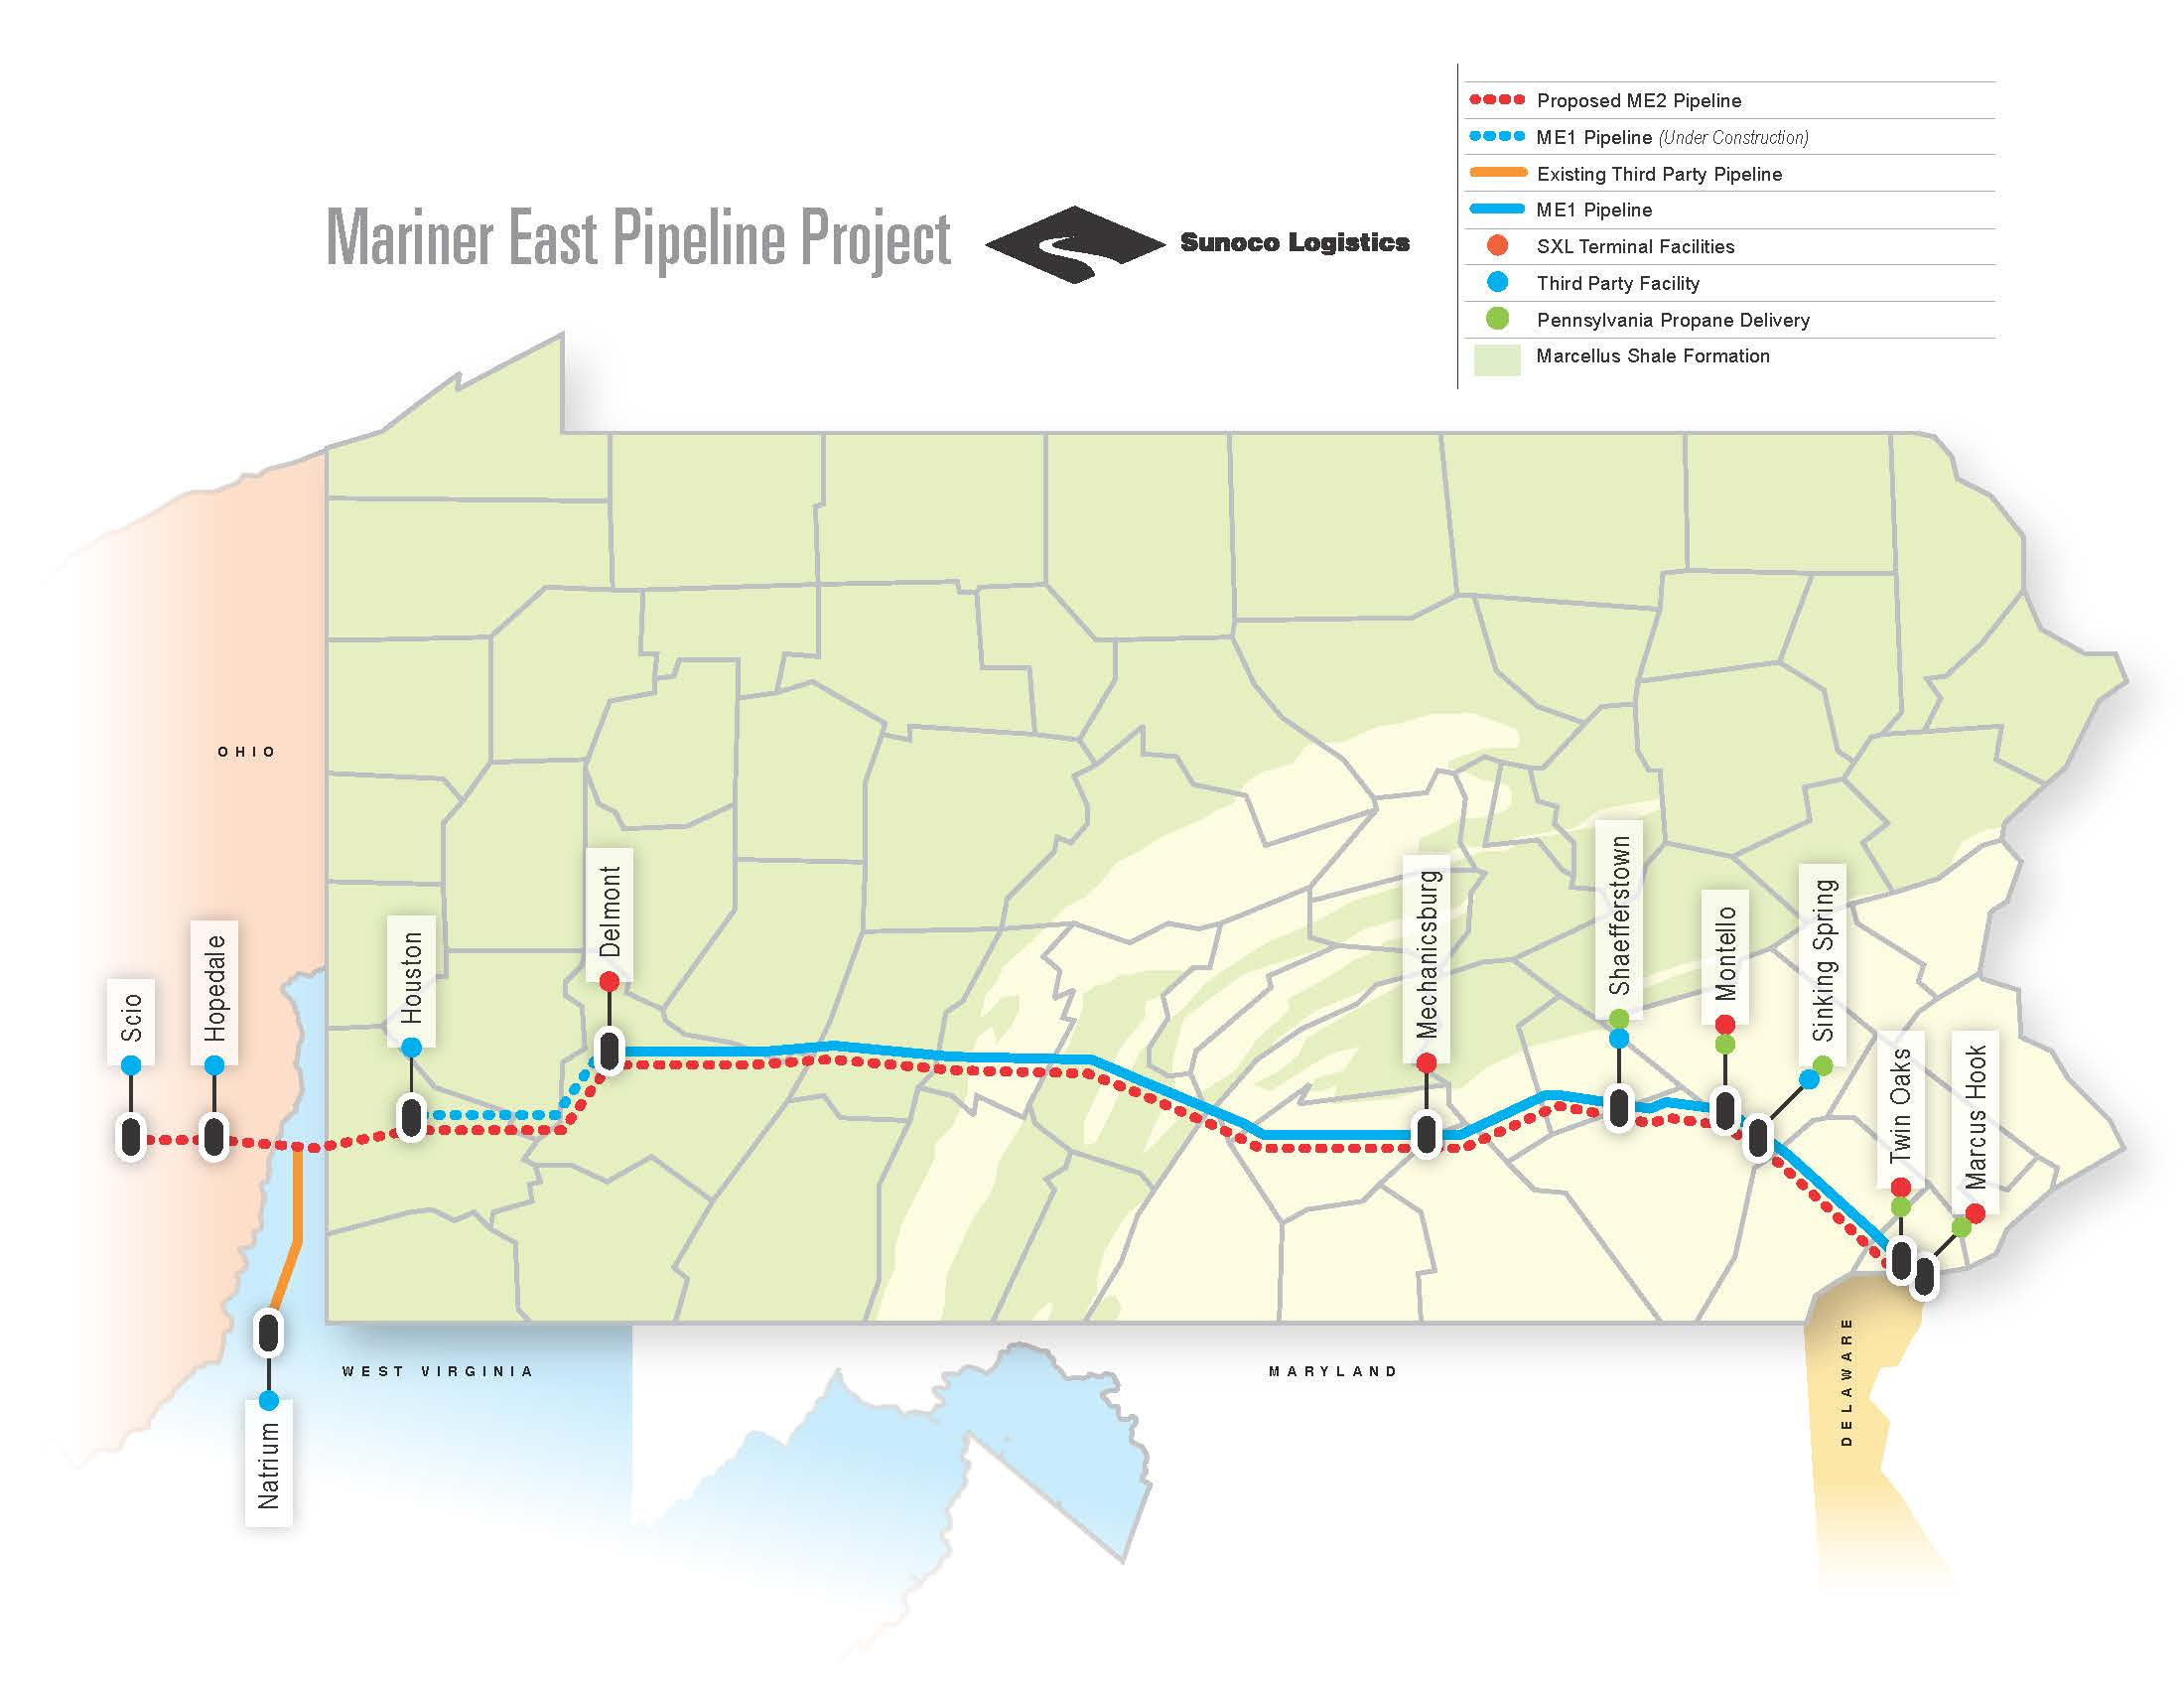 Mariner East Pipeline Project map